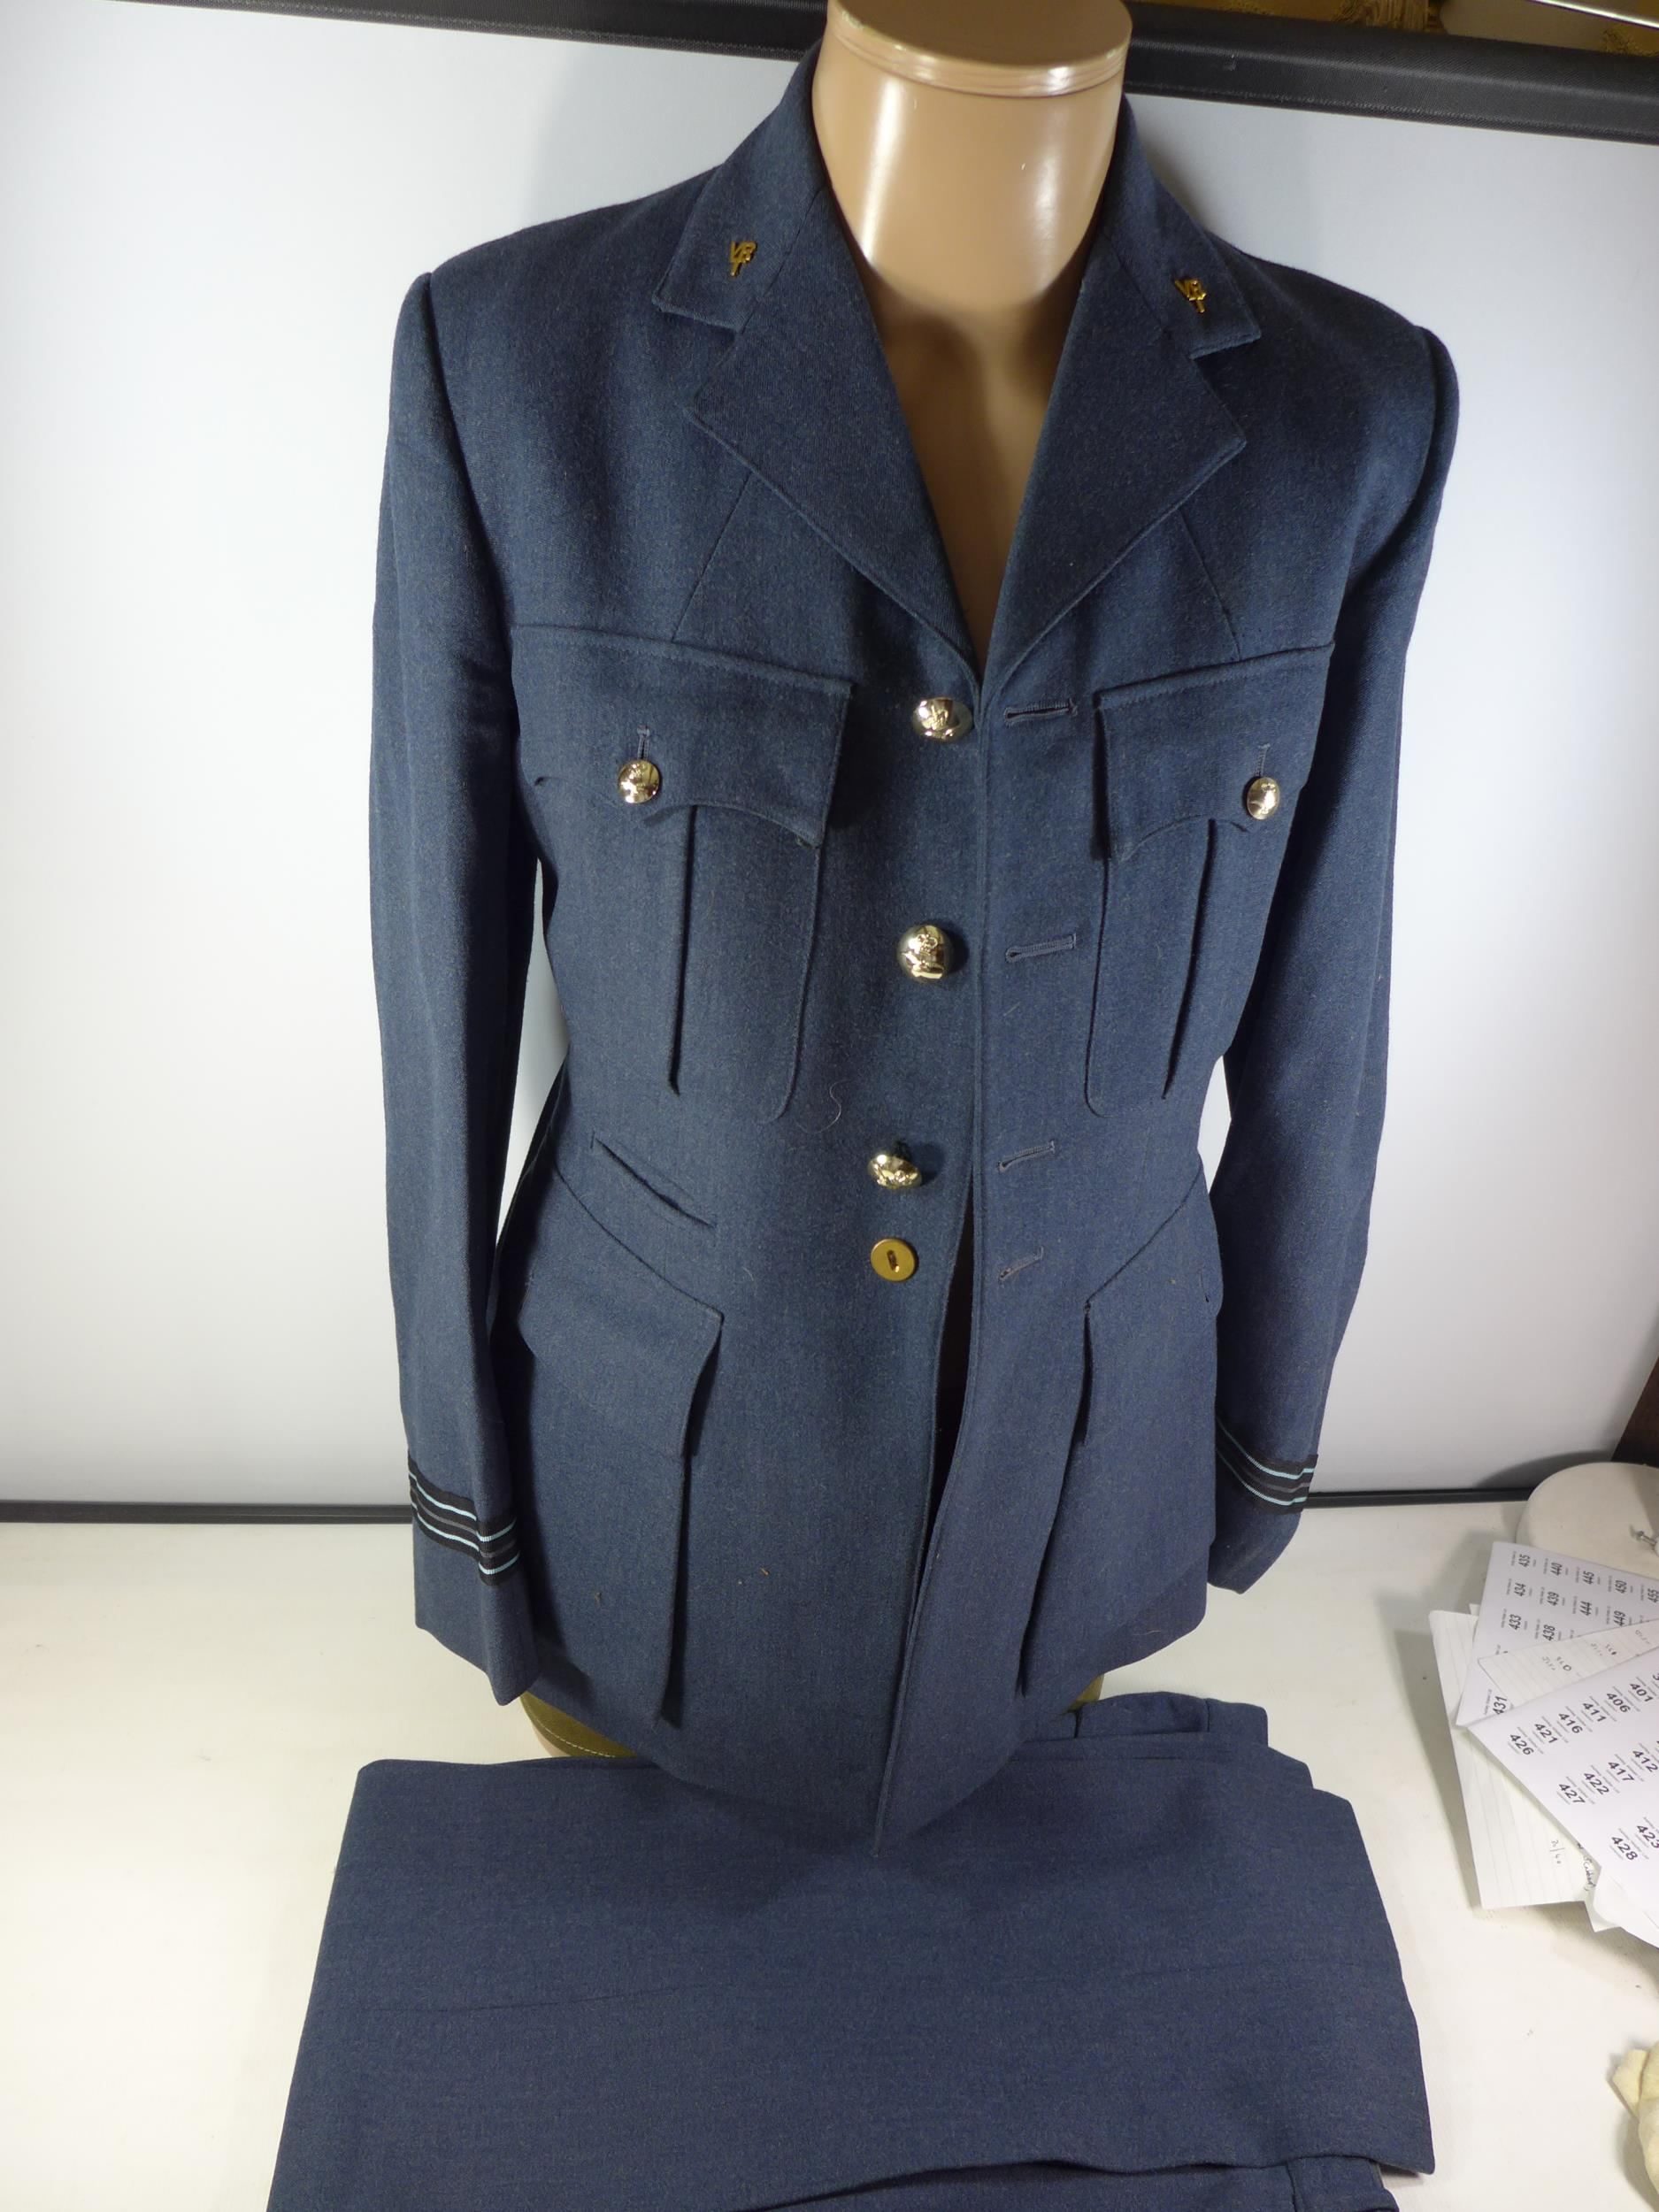 A RAF NO.1 DRESS WARRANT OFFICERS UNIFORM COMPRISING OF A JACKET AND TROUSERS, SEE IMAGE FOR SIZE